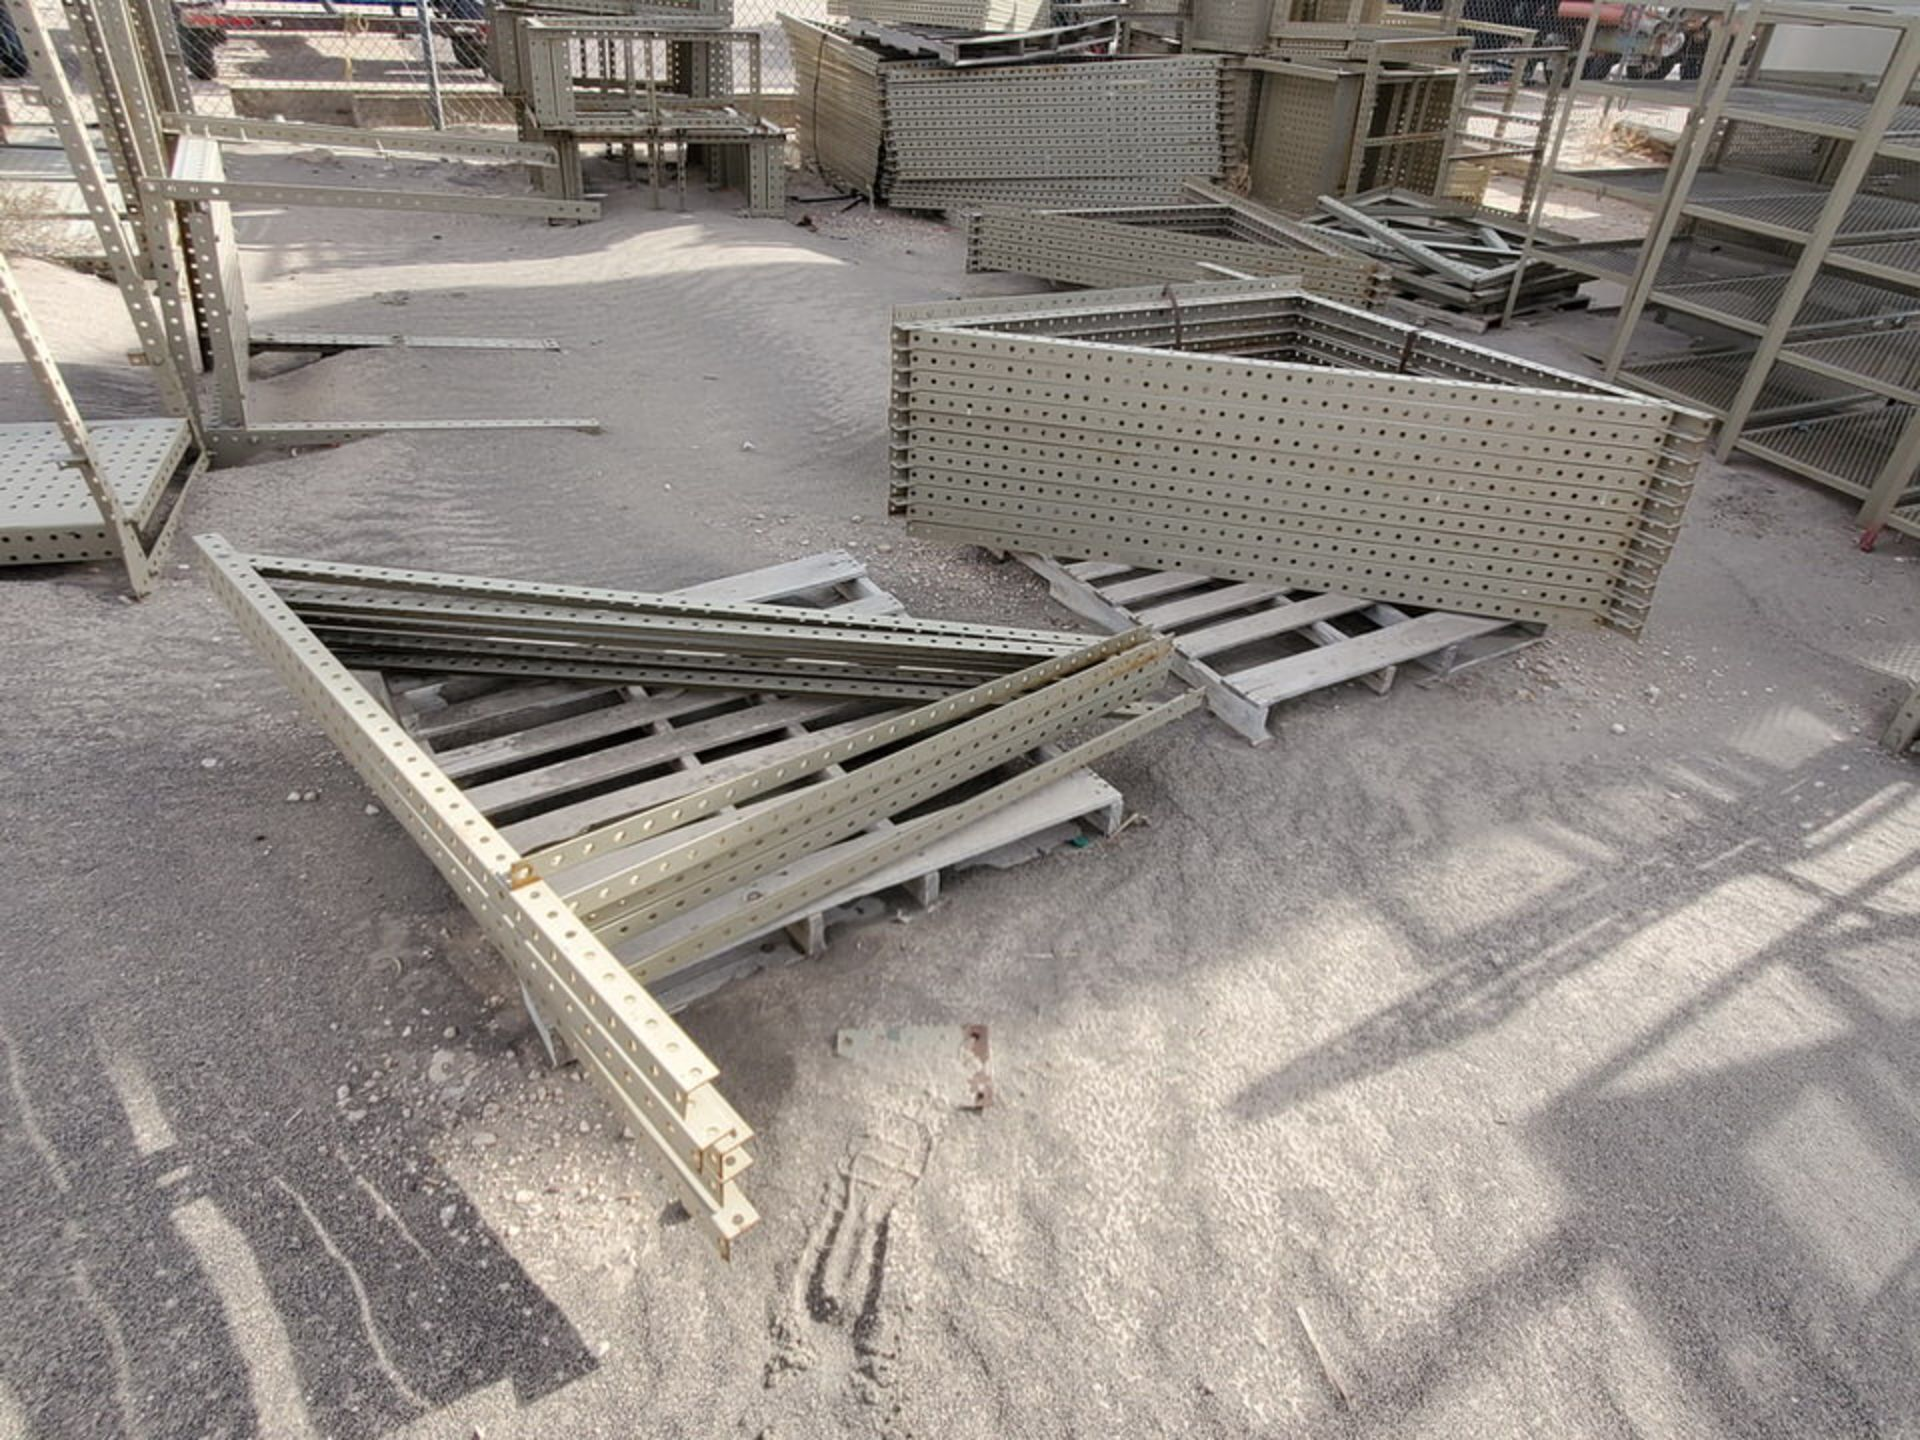 Disassembled Catwalk Sections - Image 6 of 12